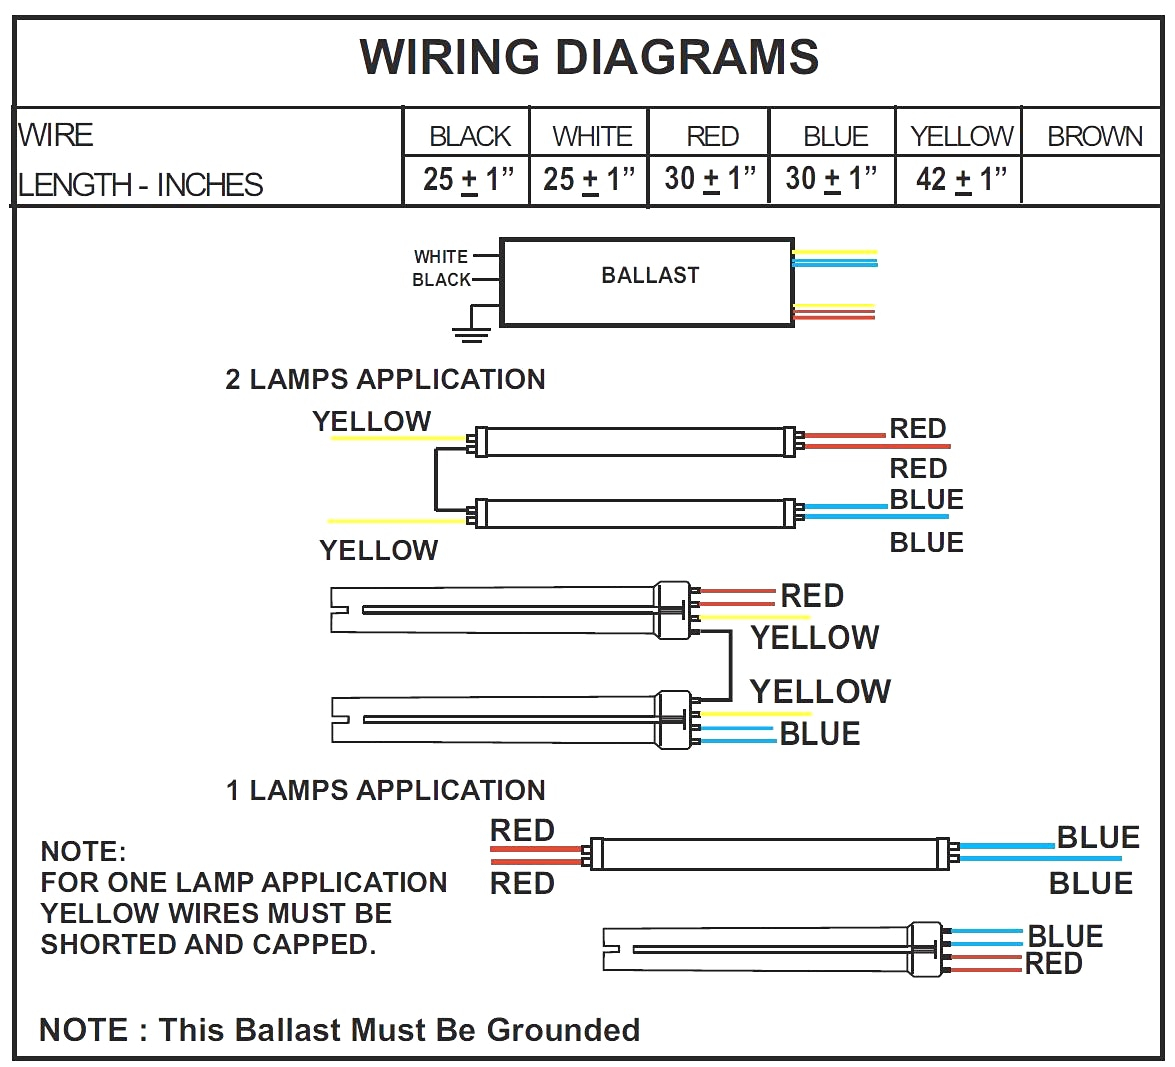 T8 Wiring Diagram | Wiring Diagram on